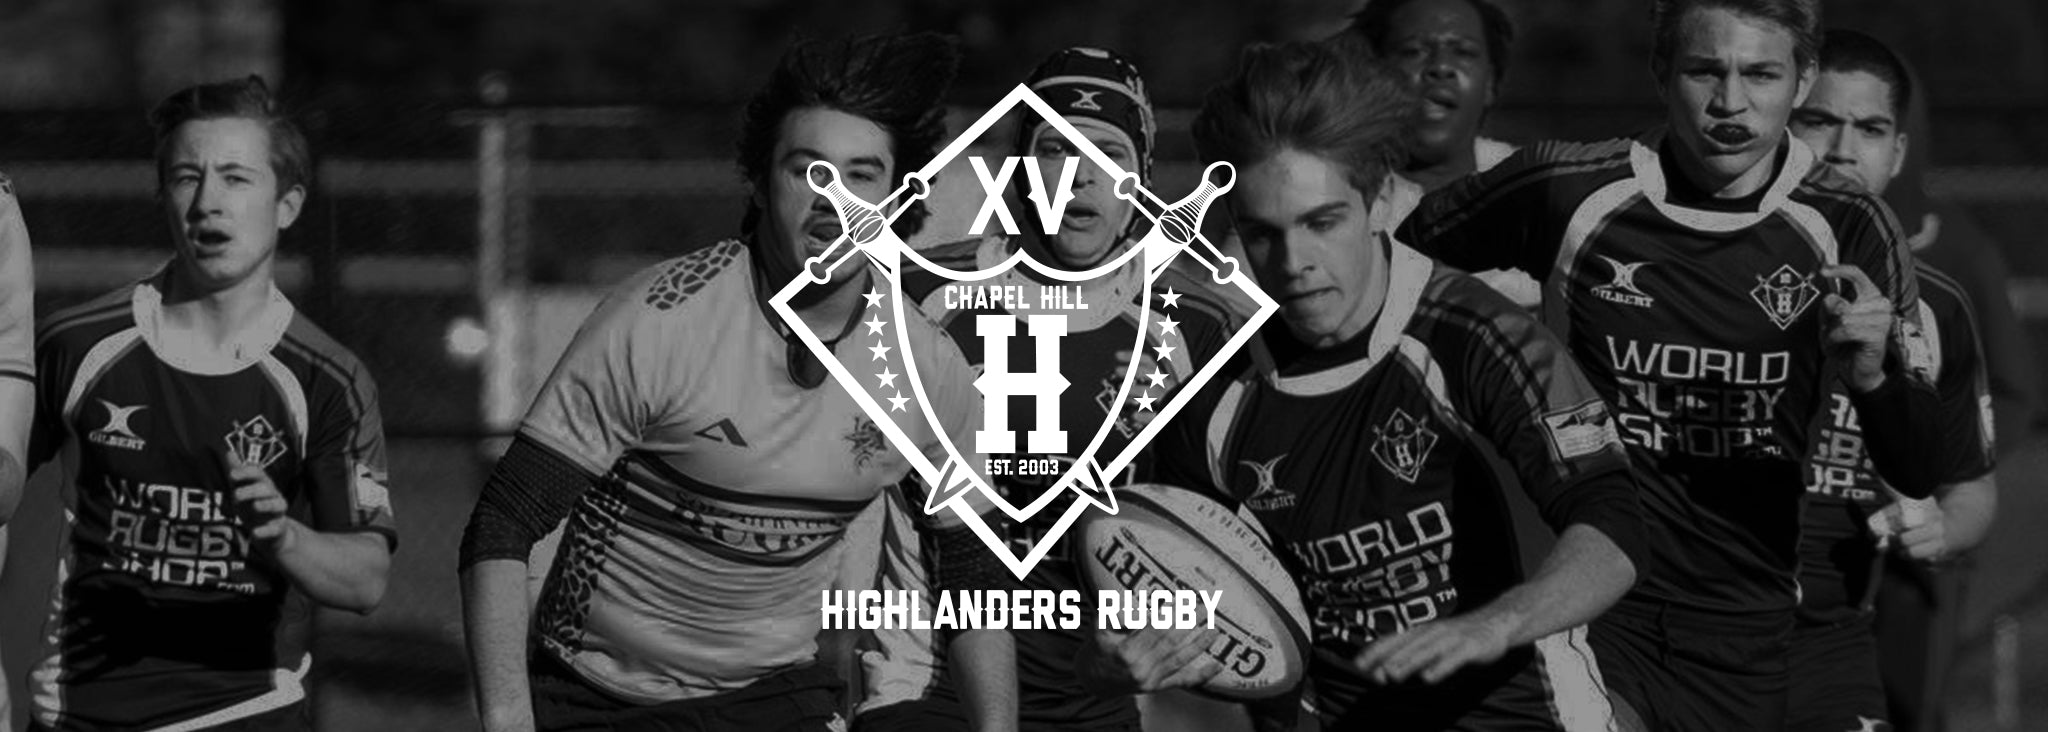 Chapel Hill Highlanders Rugby